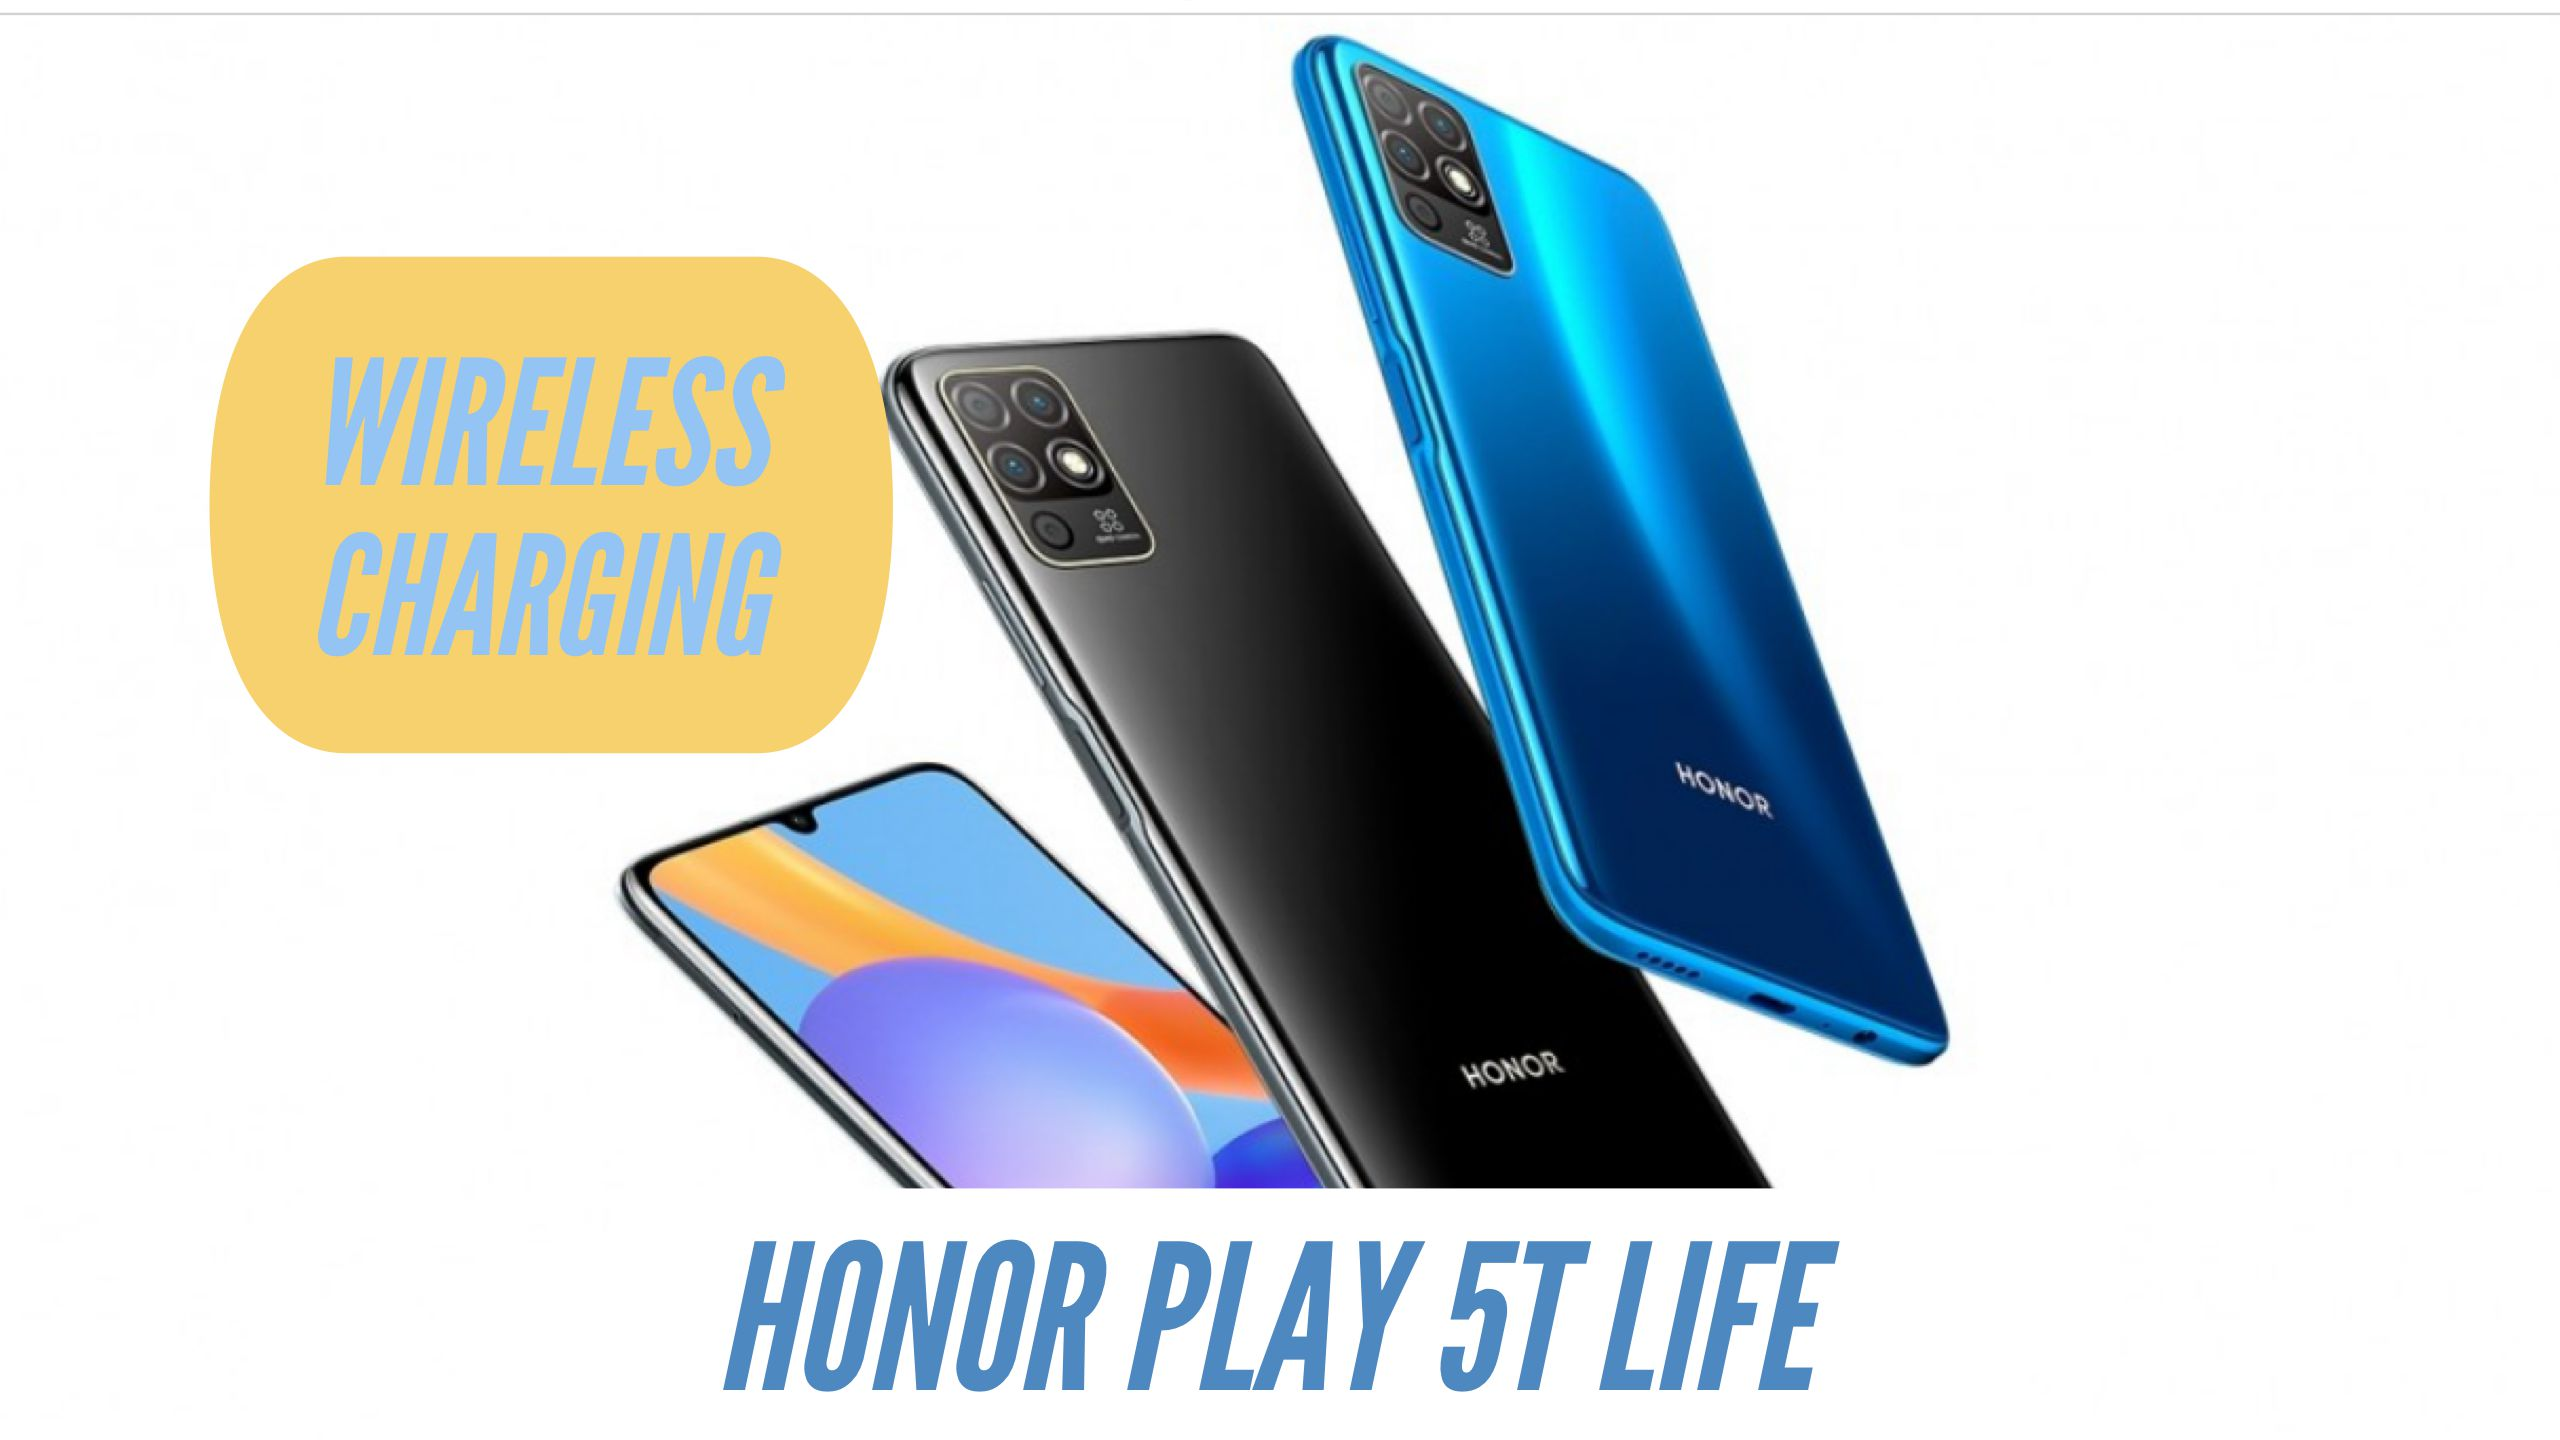 Honor Play 5T Life Wireless Charging